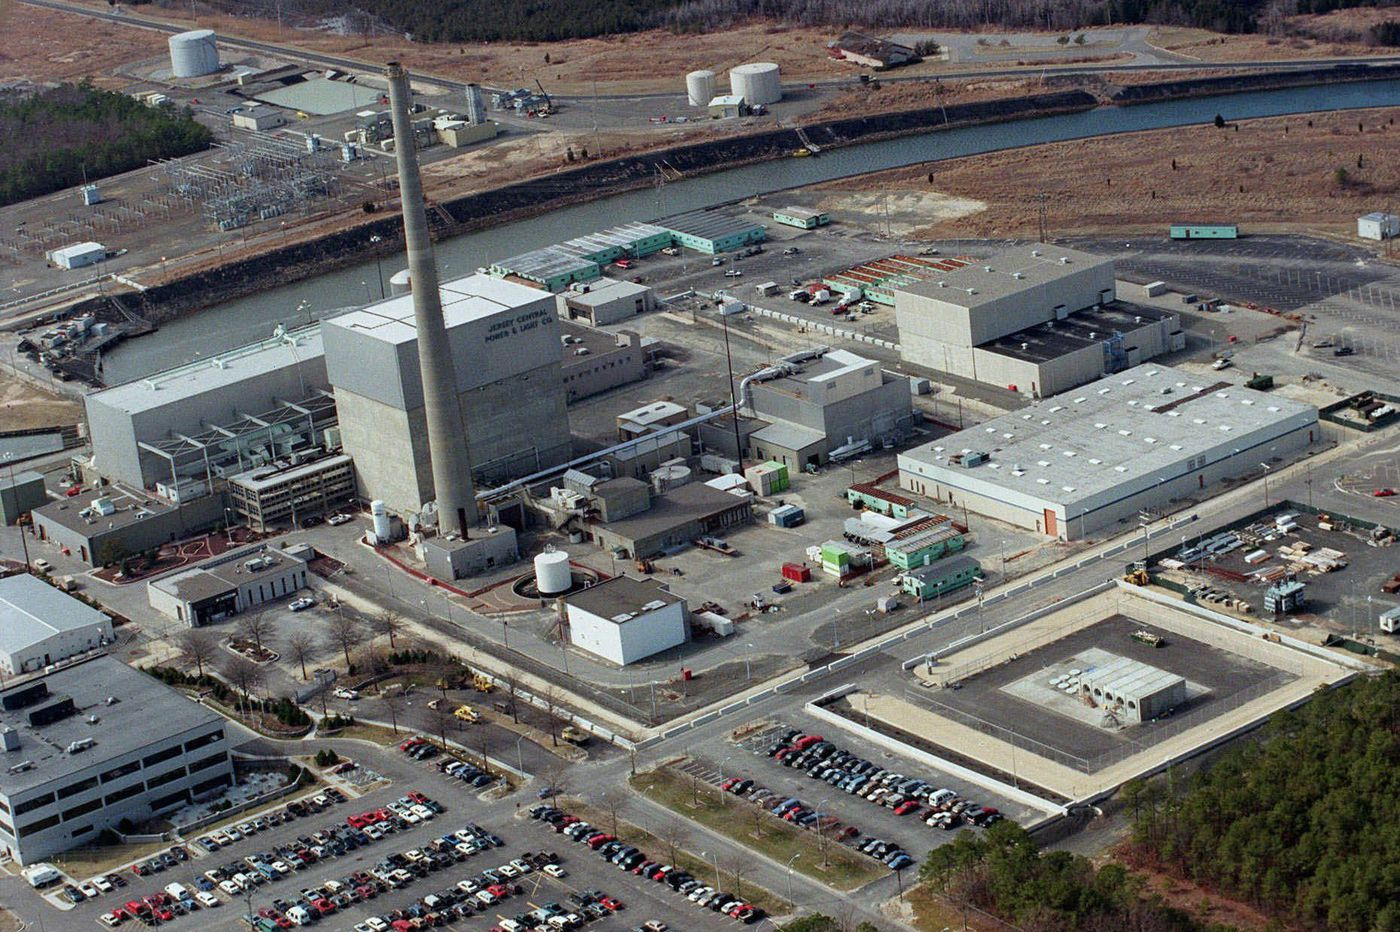 Holtec International buying Exelon's Oyster Creek nuclear plant, speeding decommissioning